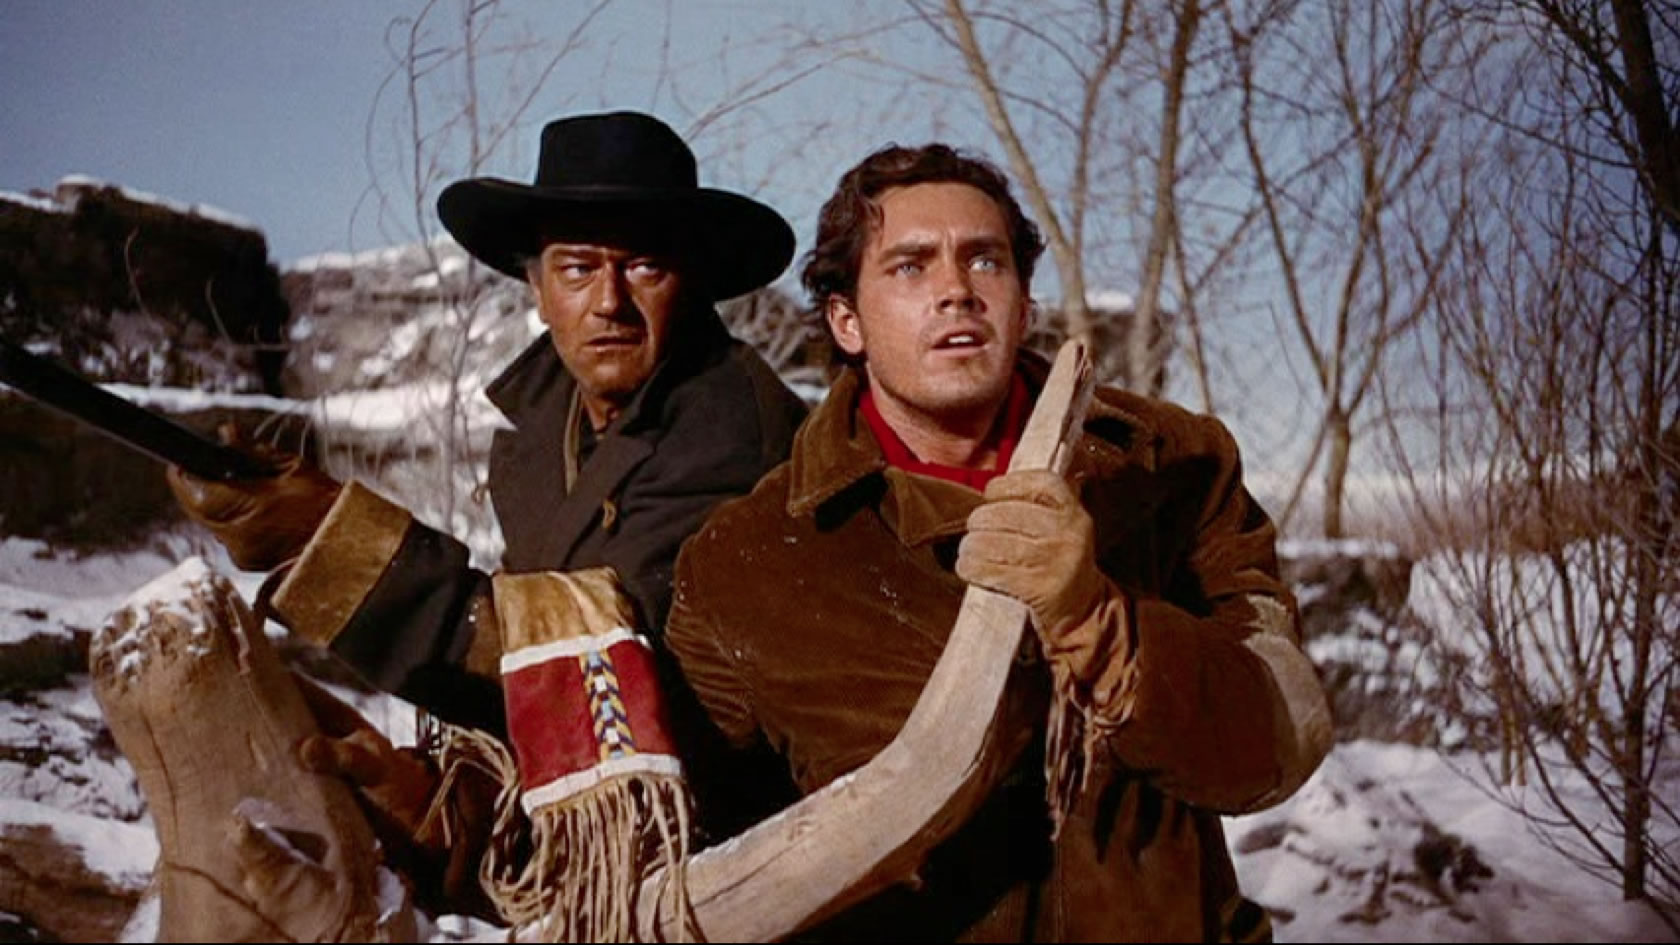 The Searchers Film